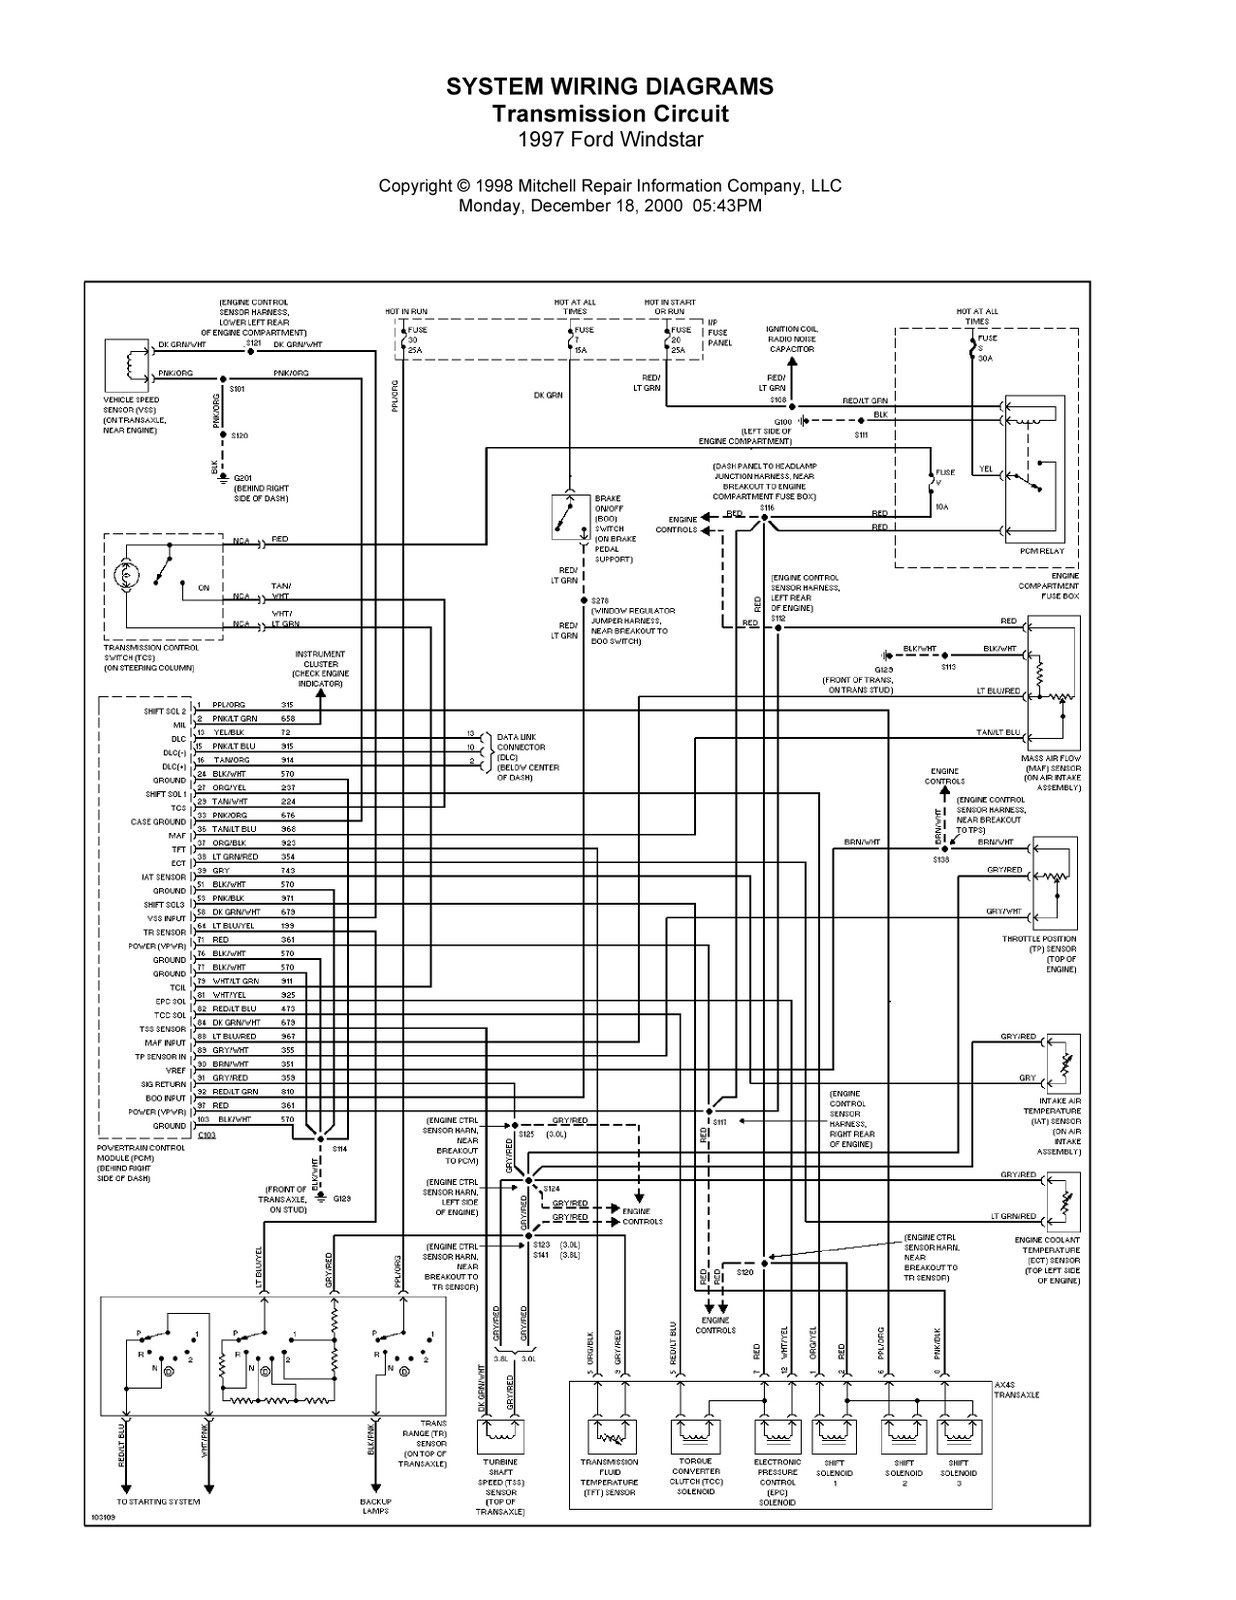 2001 ford windstar wiring diagram ford 3b4sl